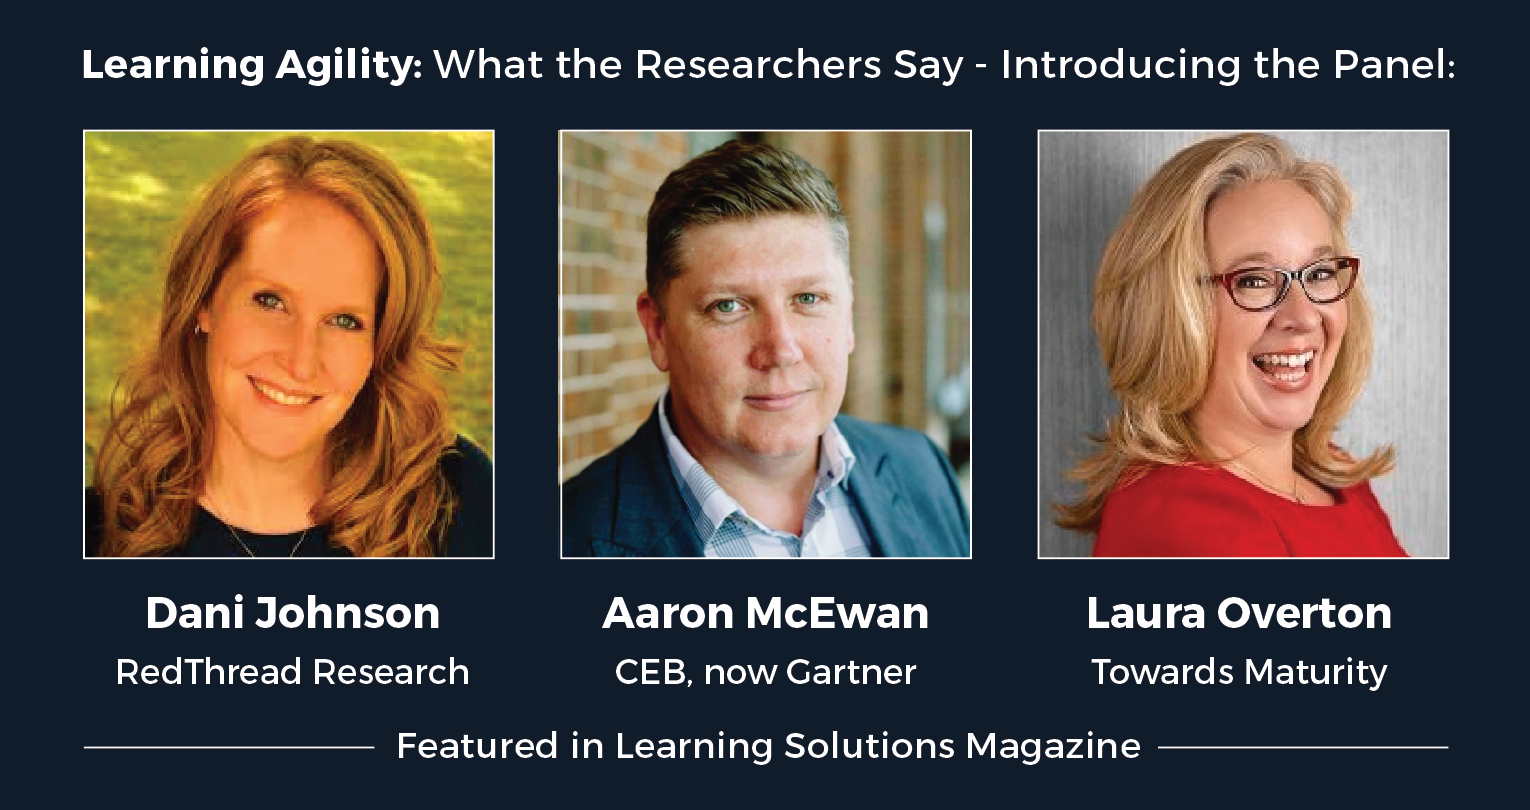 Photos of the members of the learning agility research panel.